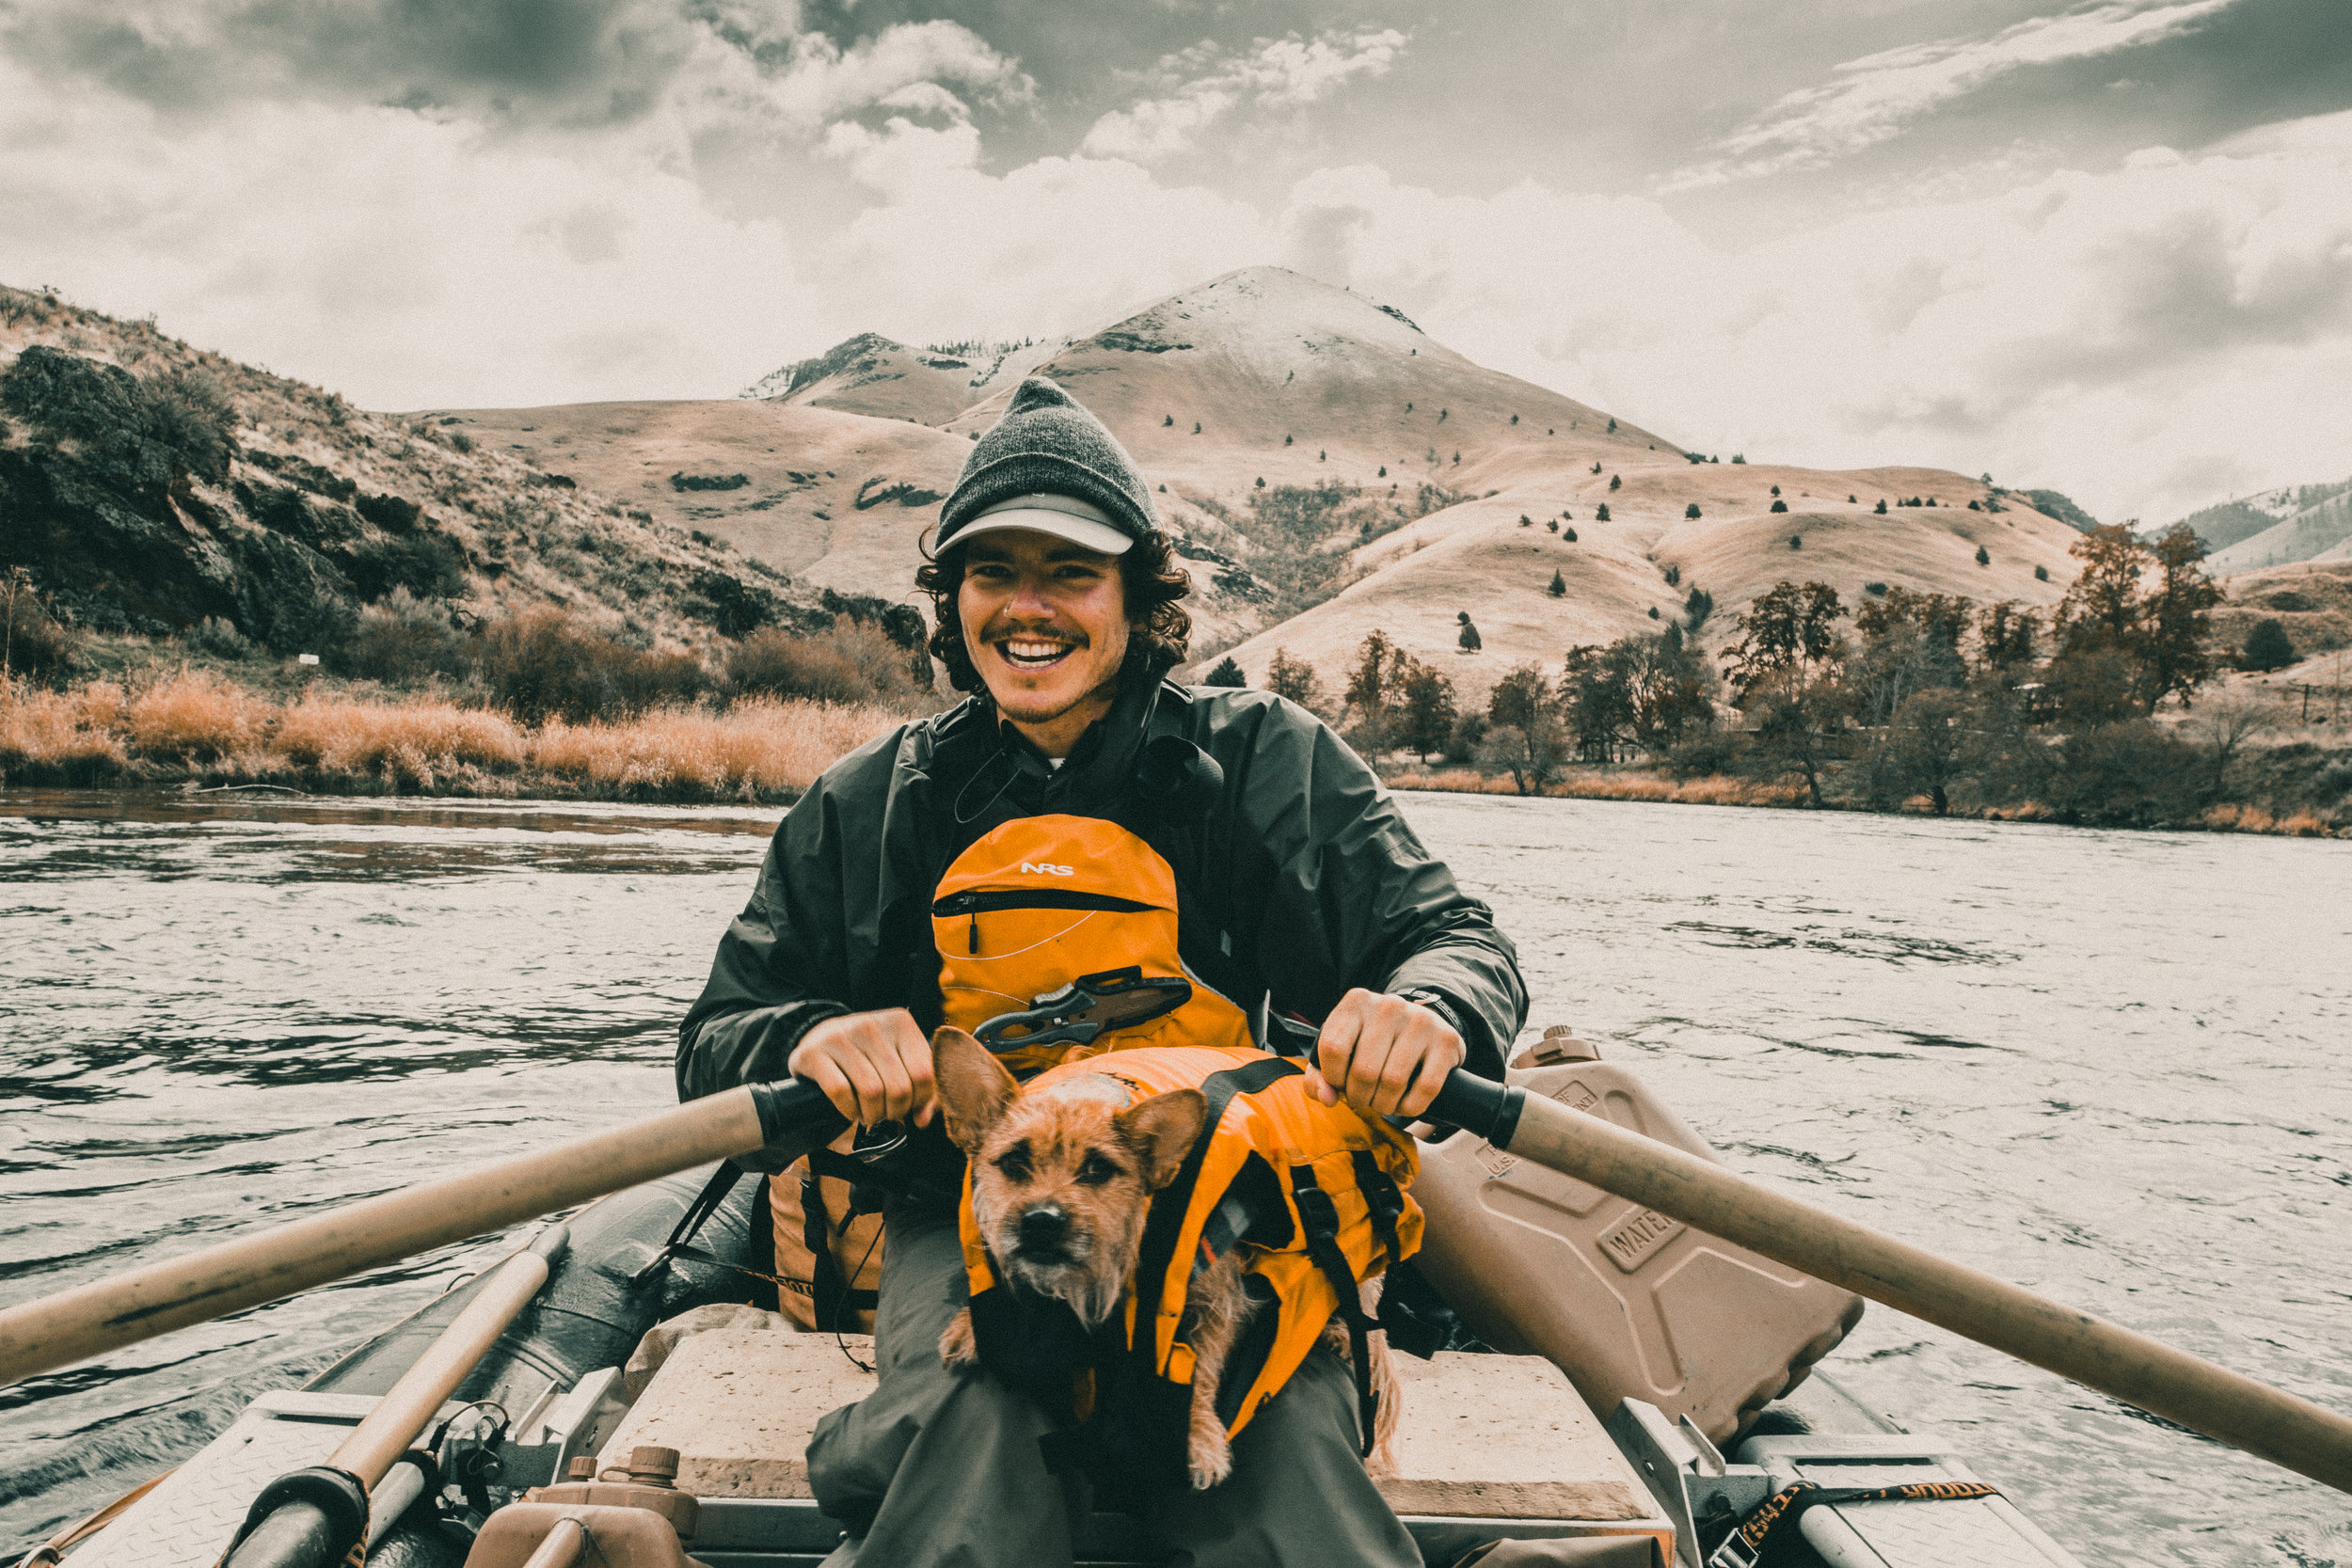 Ethan Wyman - River guide and expedition coordinator